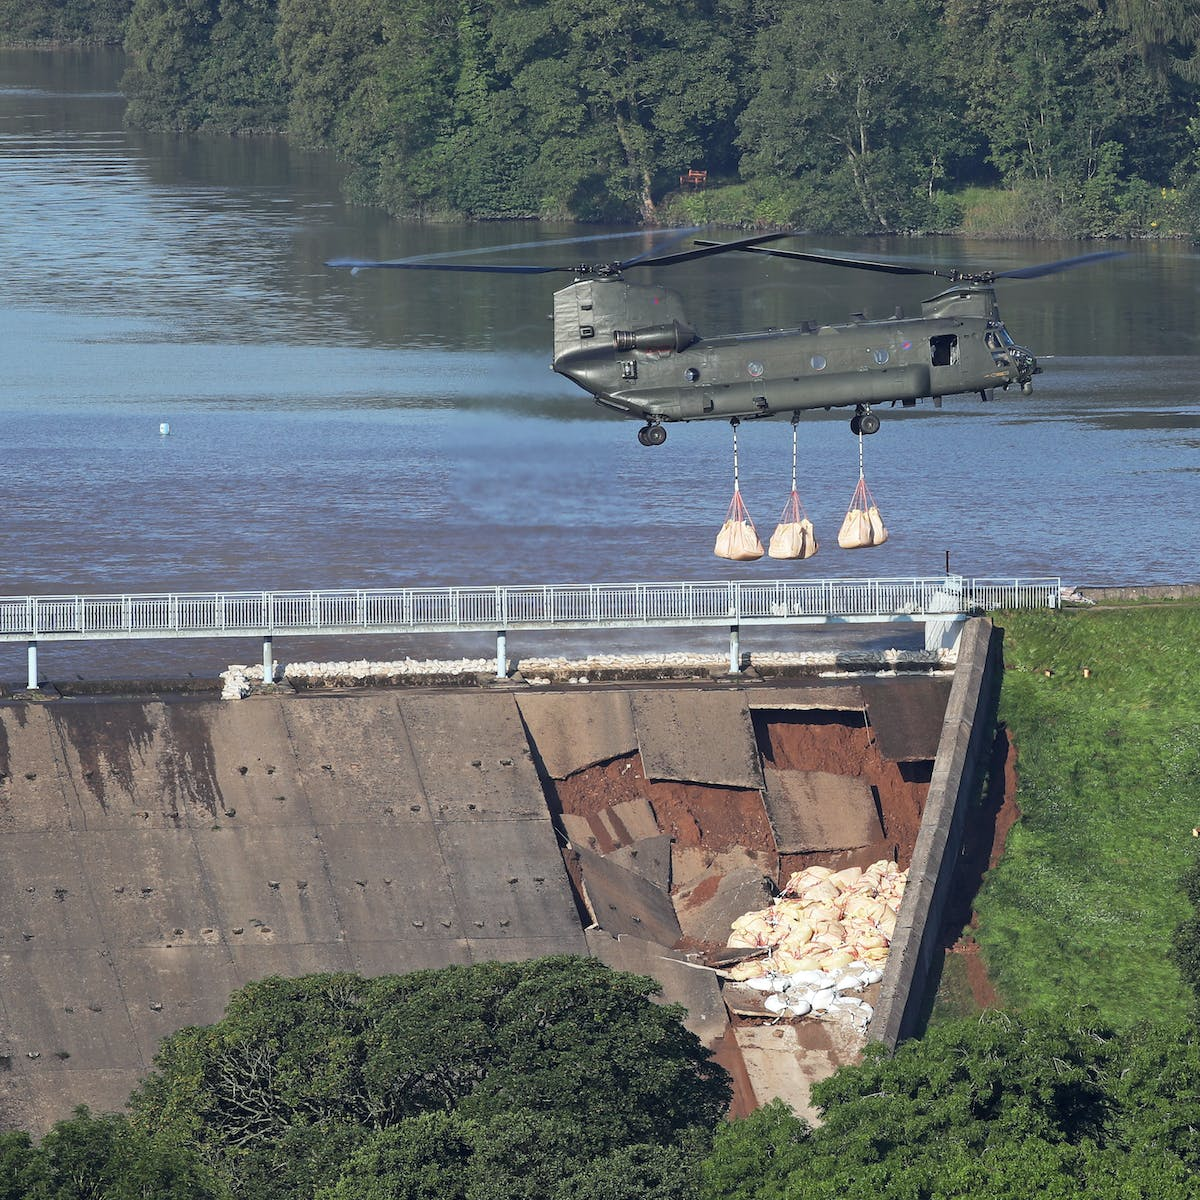 Whaley Bridge dam collapse is a wake-up call: concrete